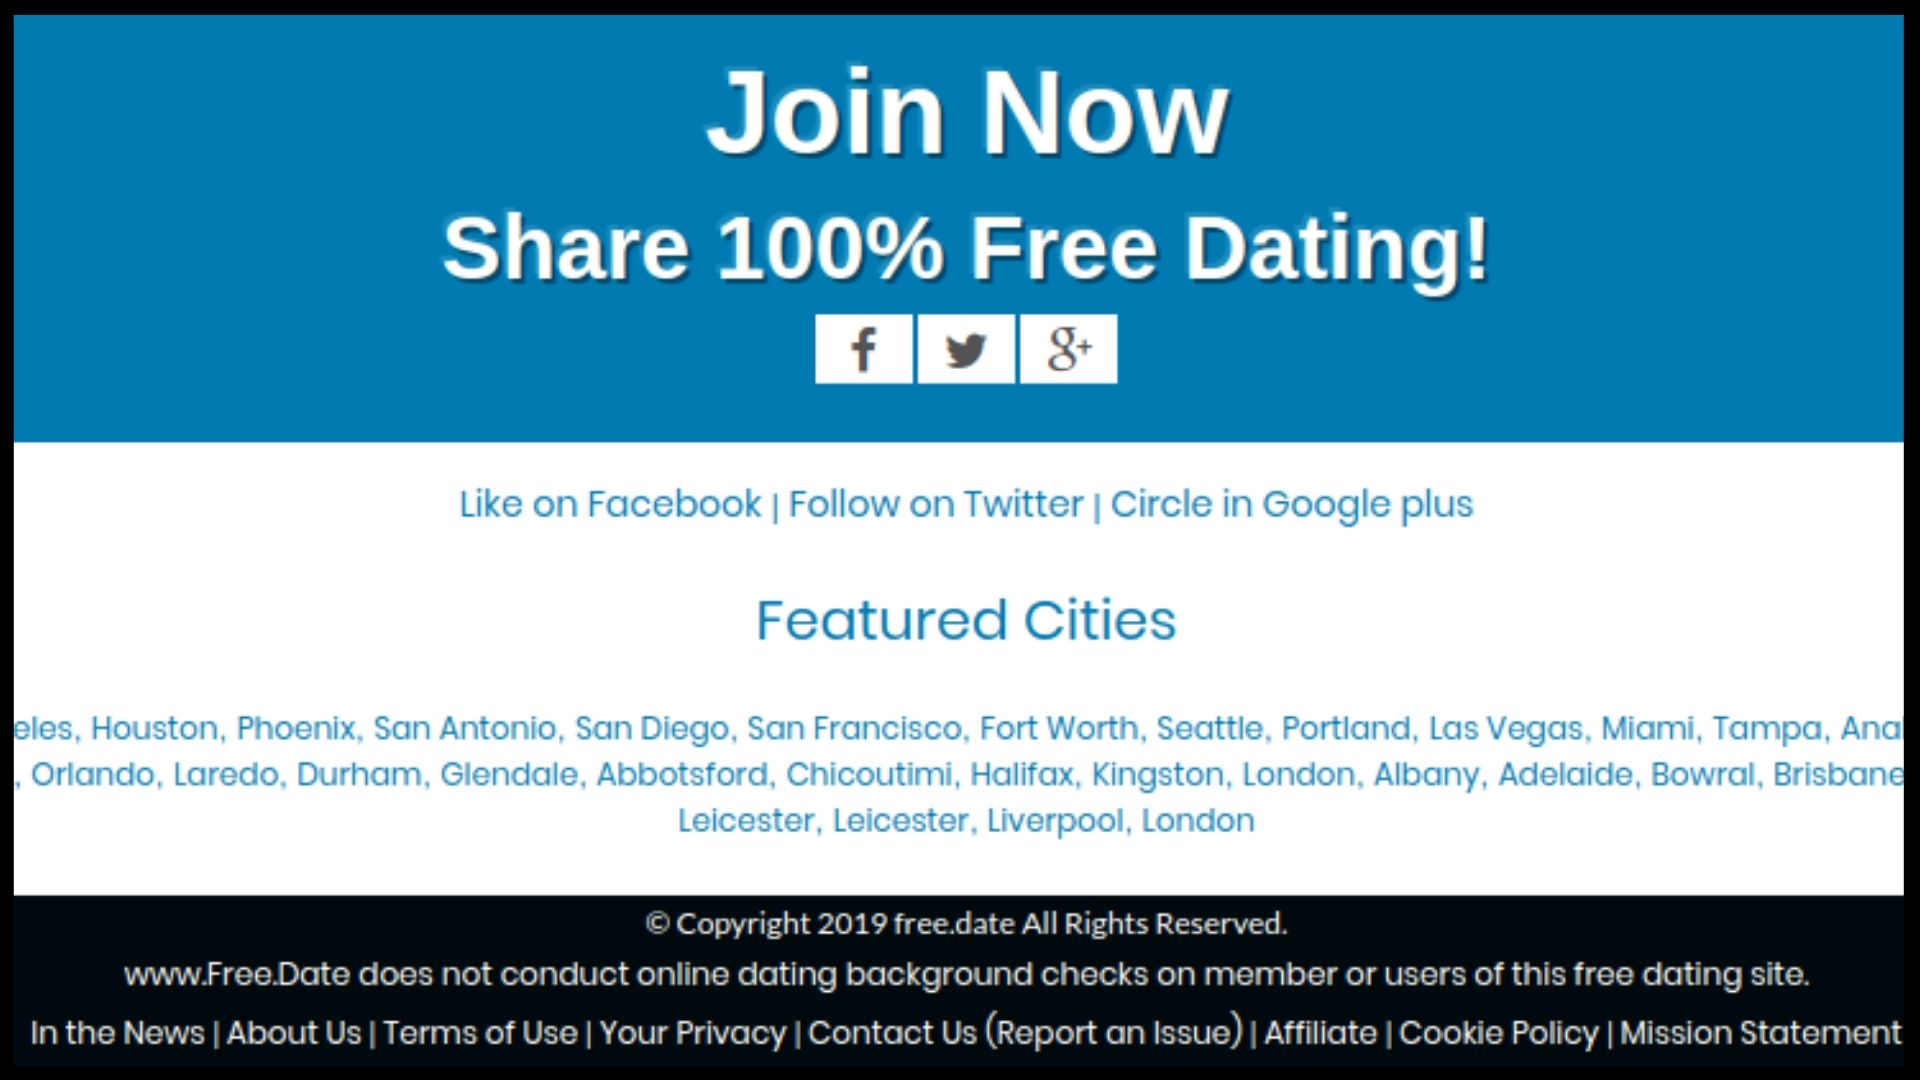 Free.Date Footer Section